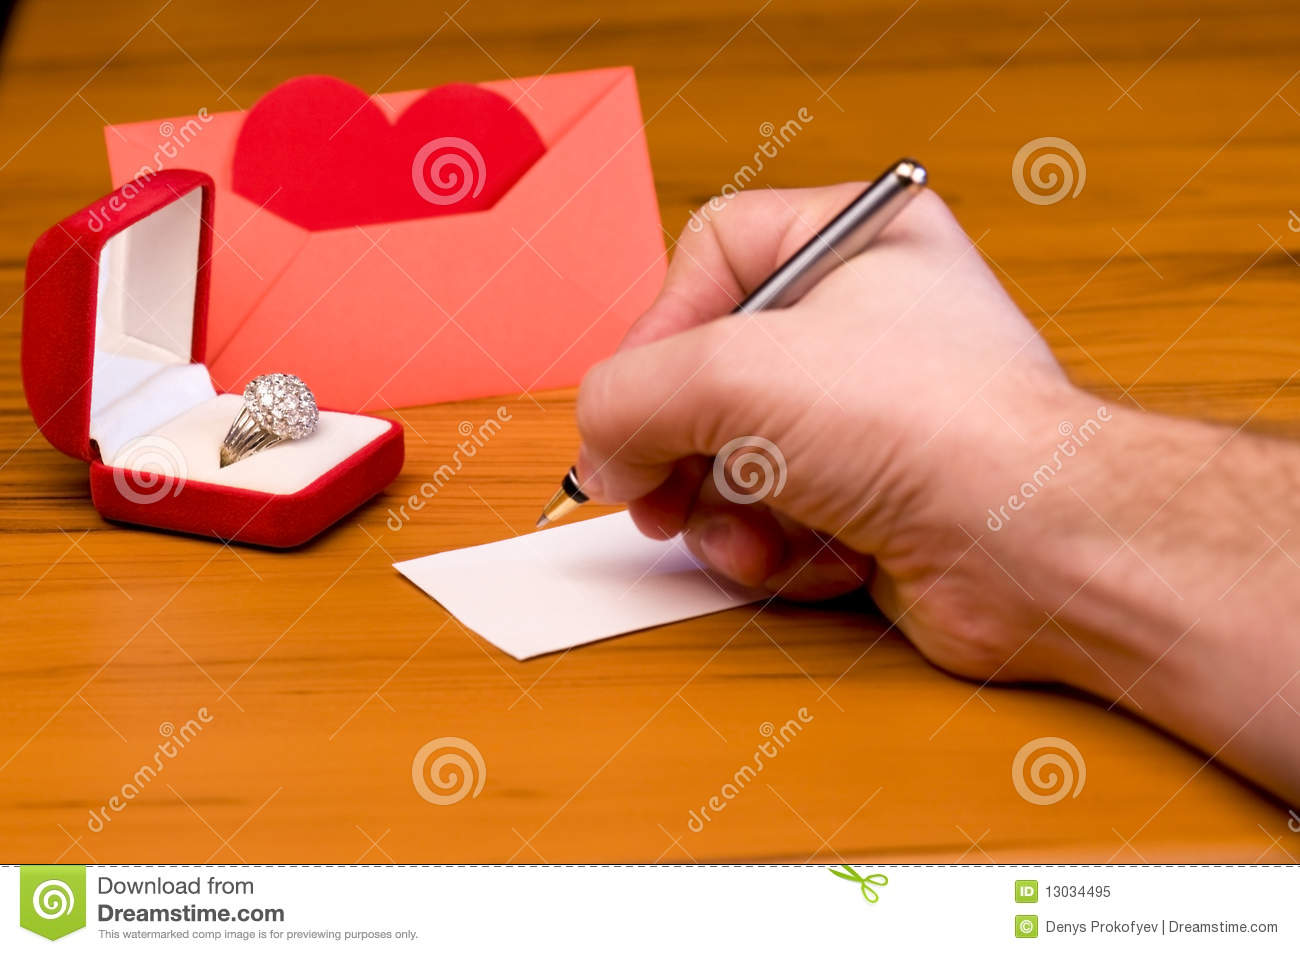 Love Letter Royalty Free Stock Photo - Image: 13034495